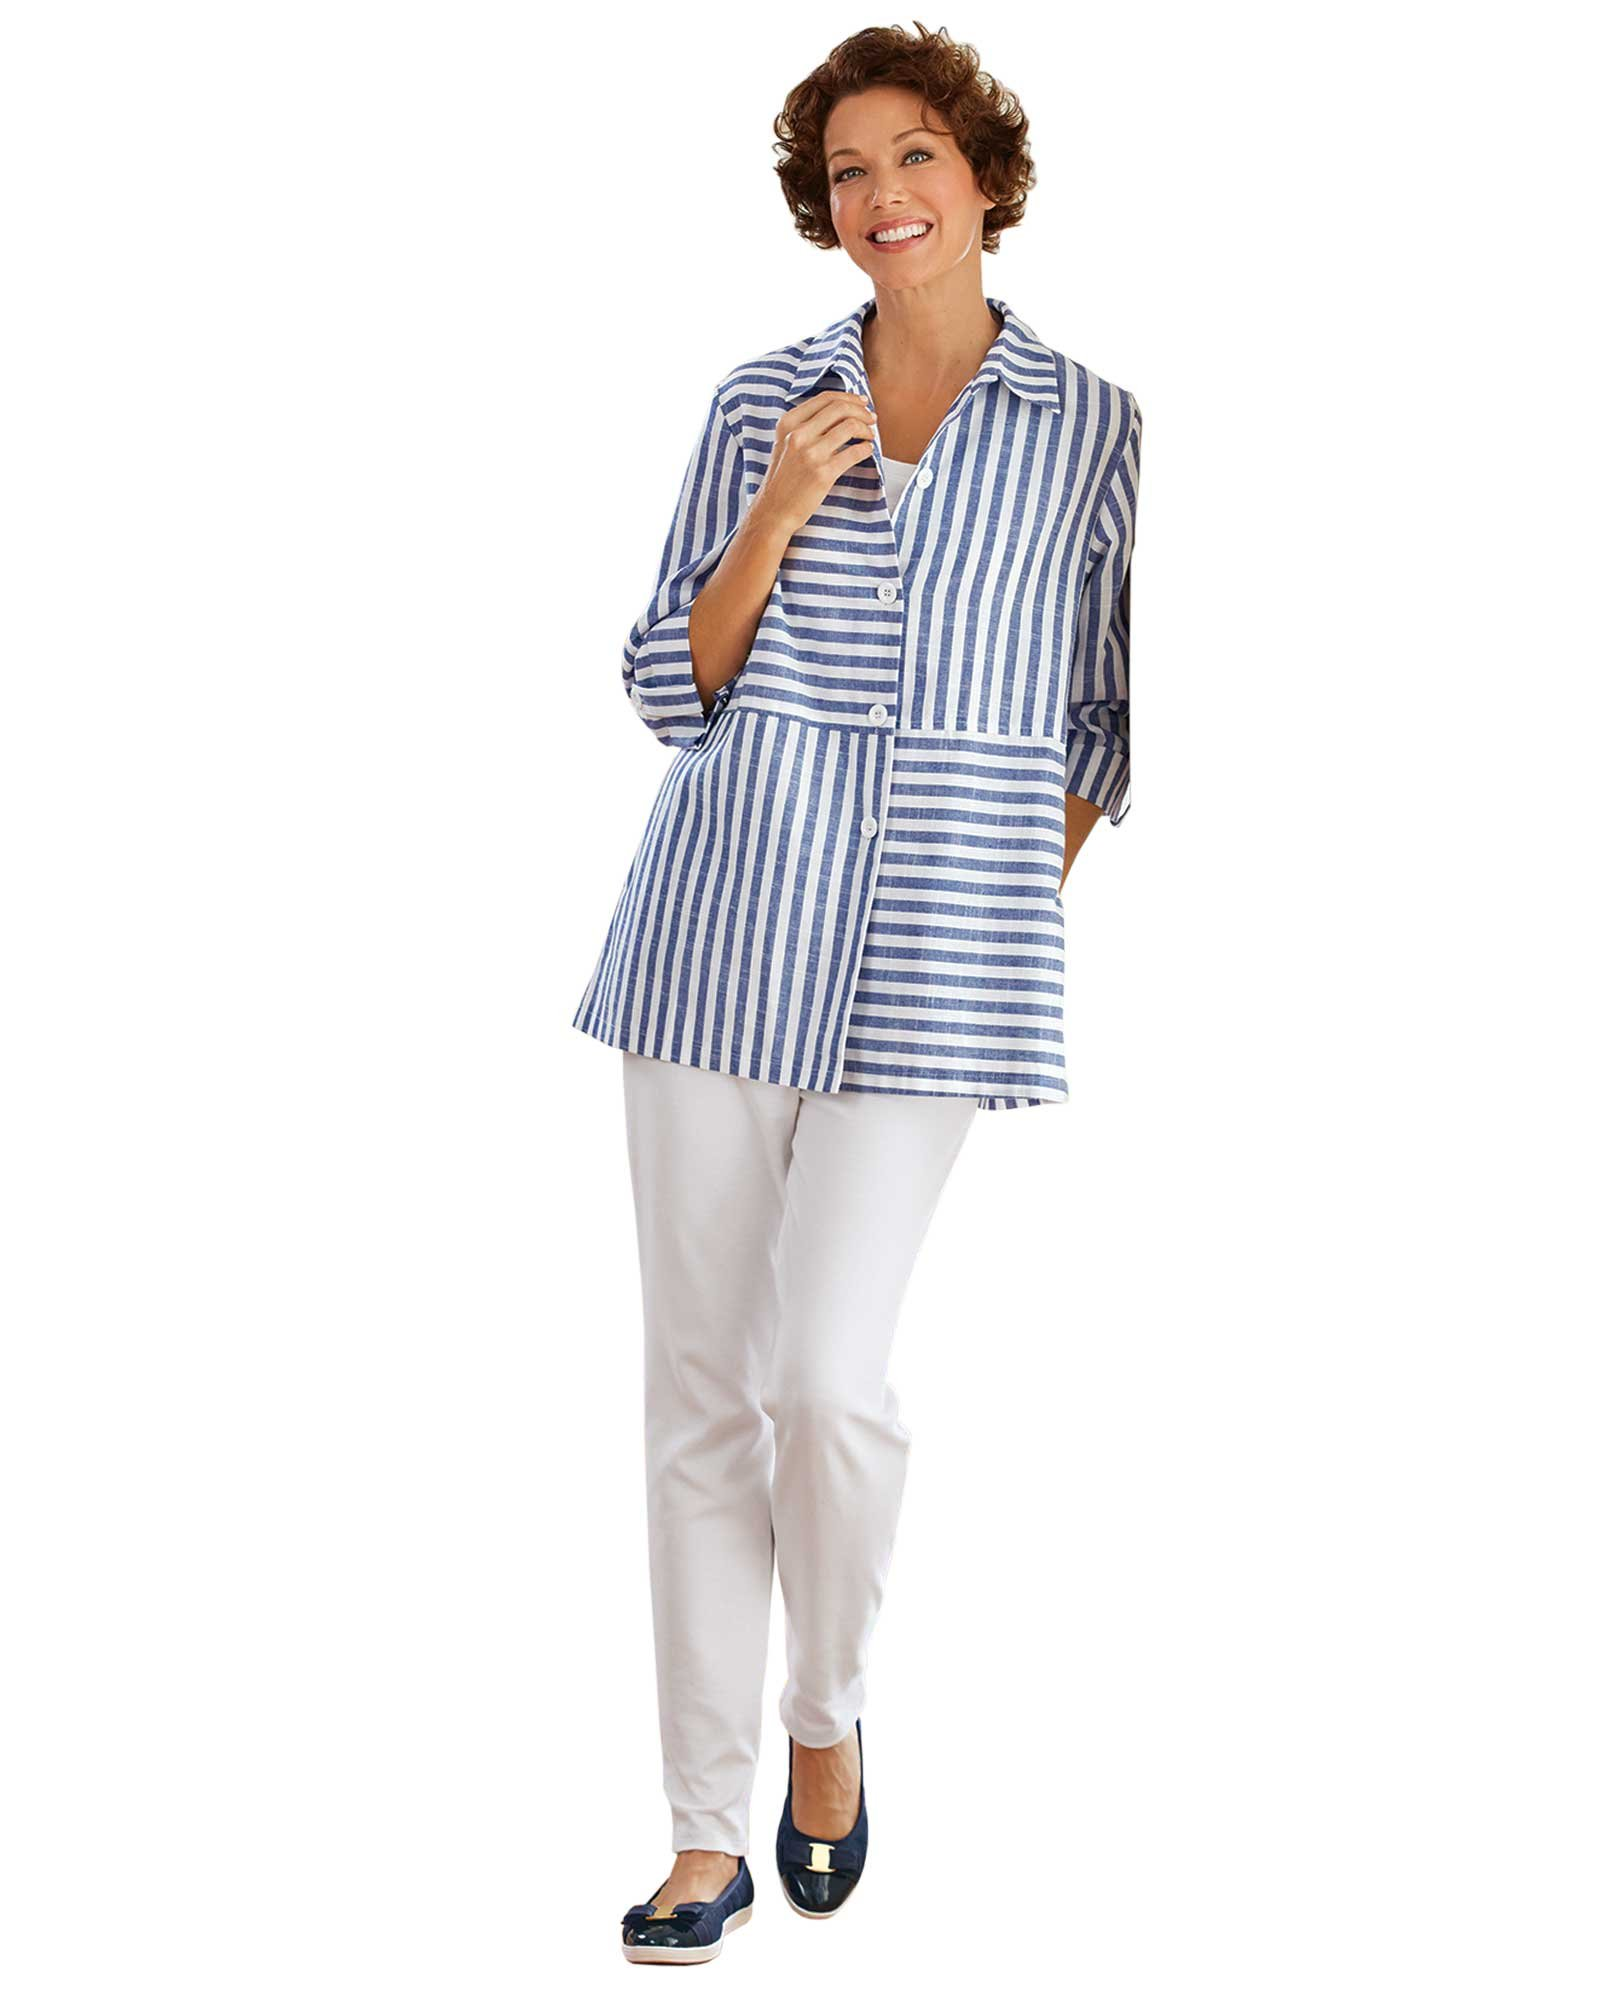 National Striped Shirt Jacket, Blue Stripe, Large